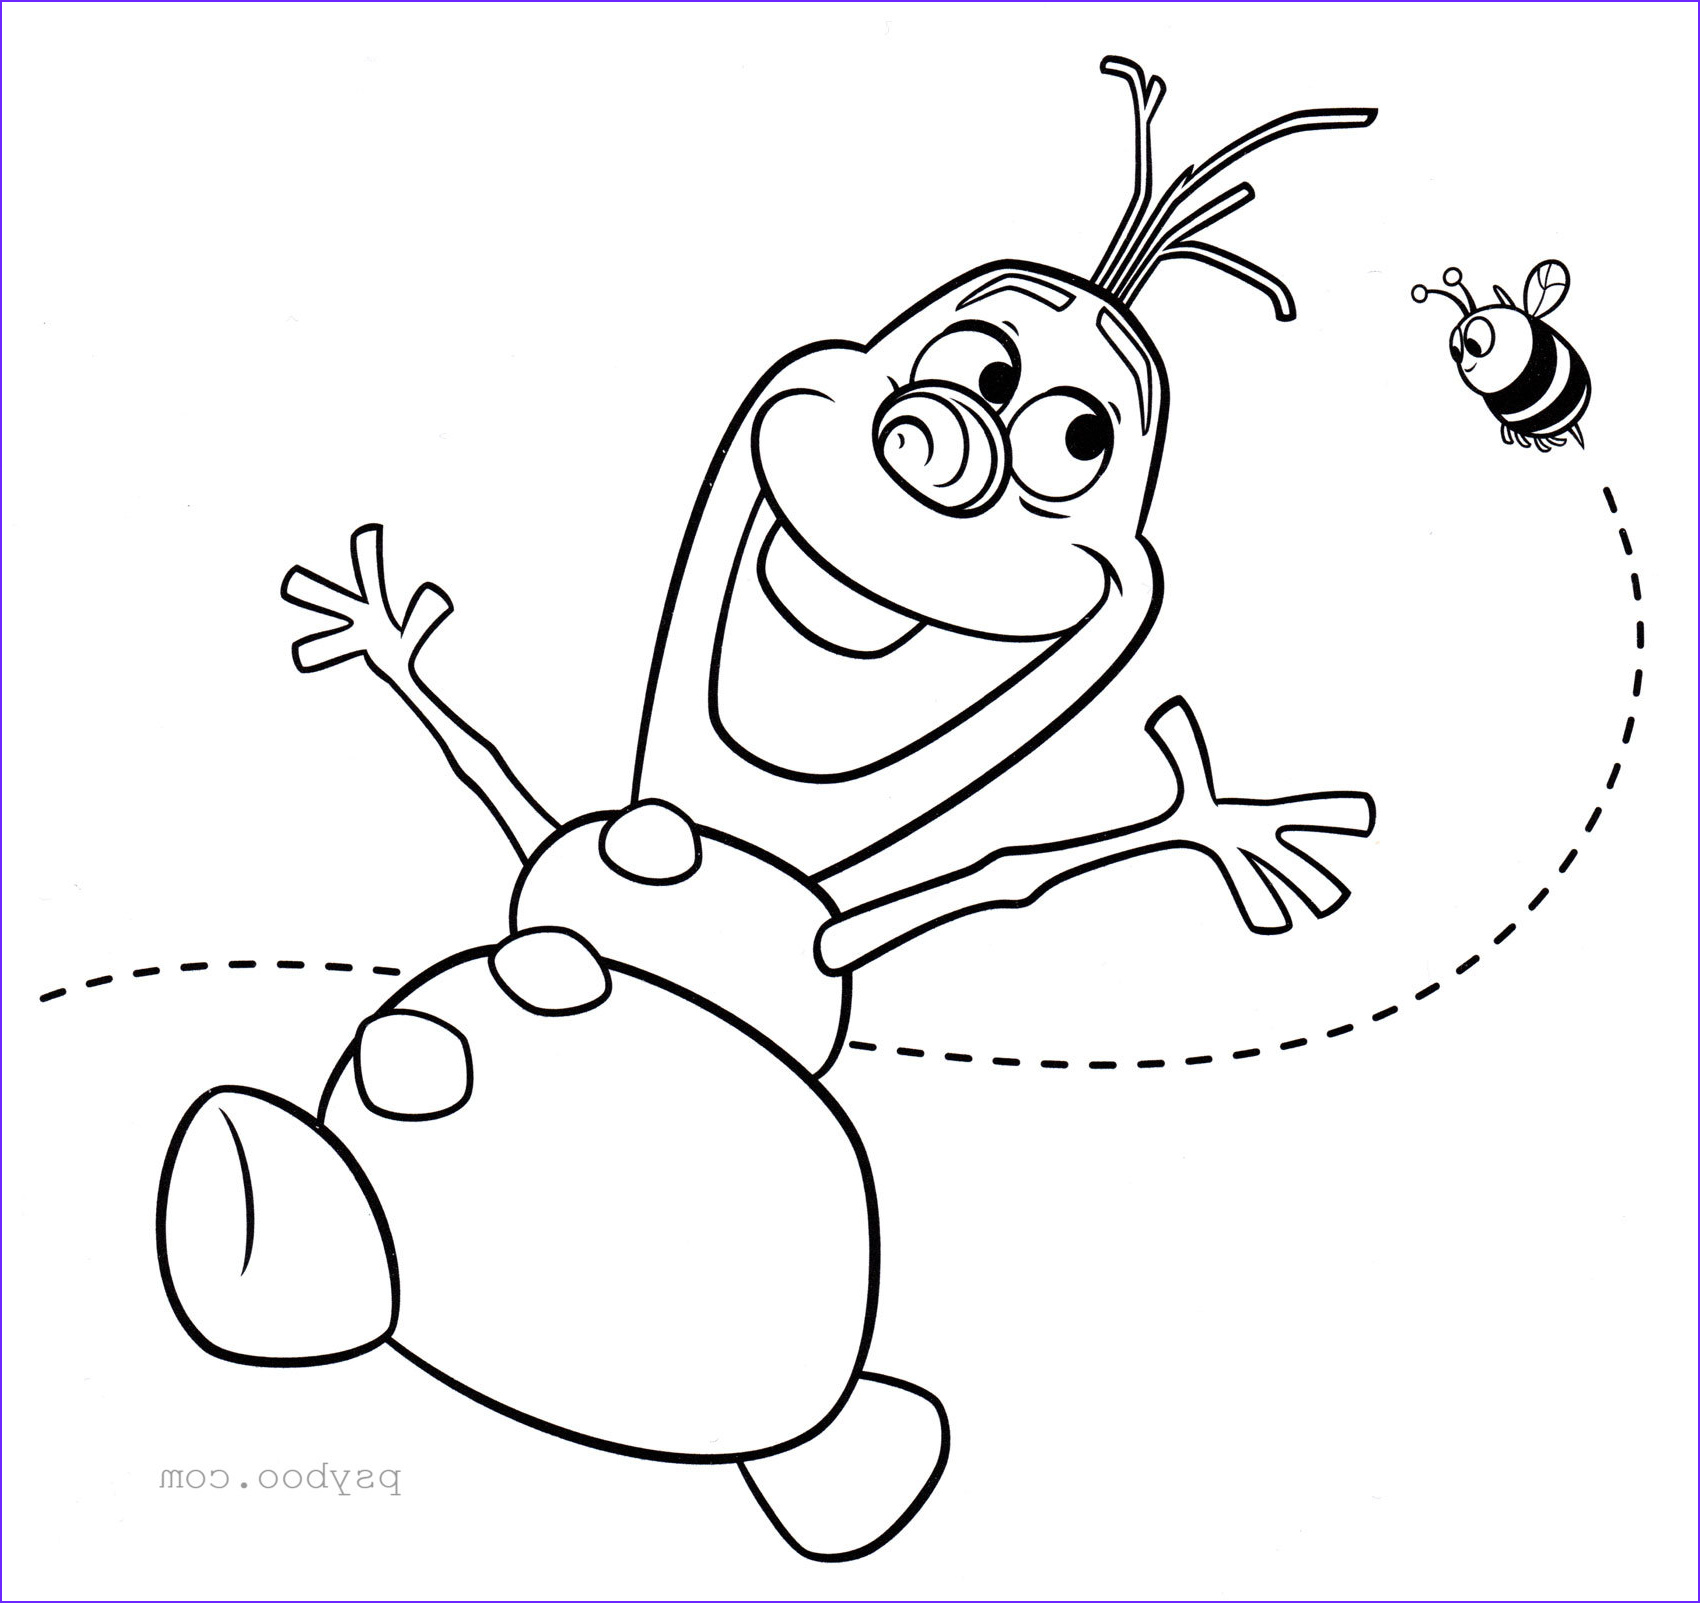 Olaf Coloring Page Free Unique Photography Loveable Olaf Coloring Pages ⋆free Printable Pdf Line 2020